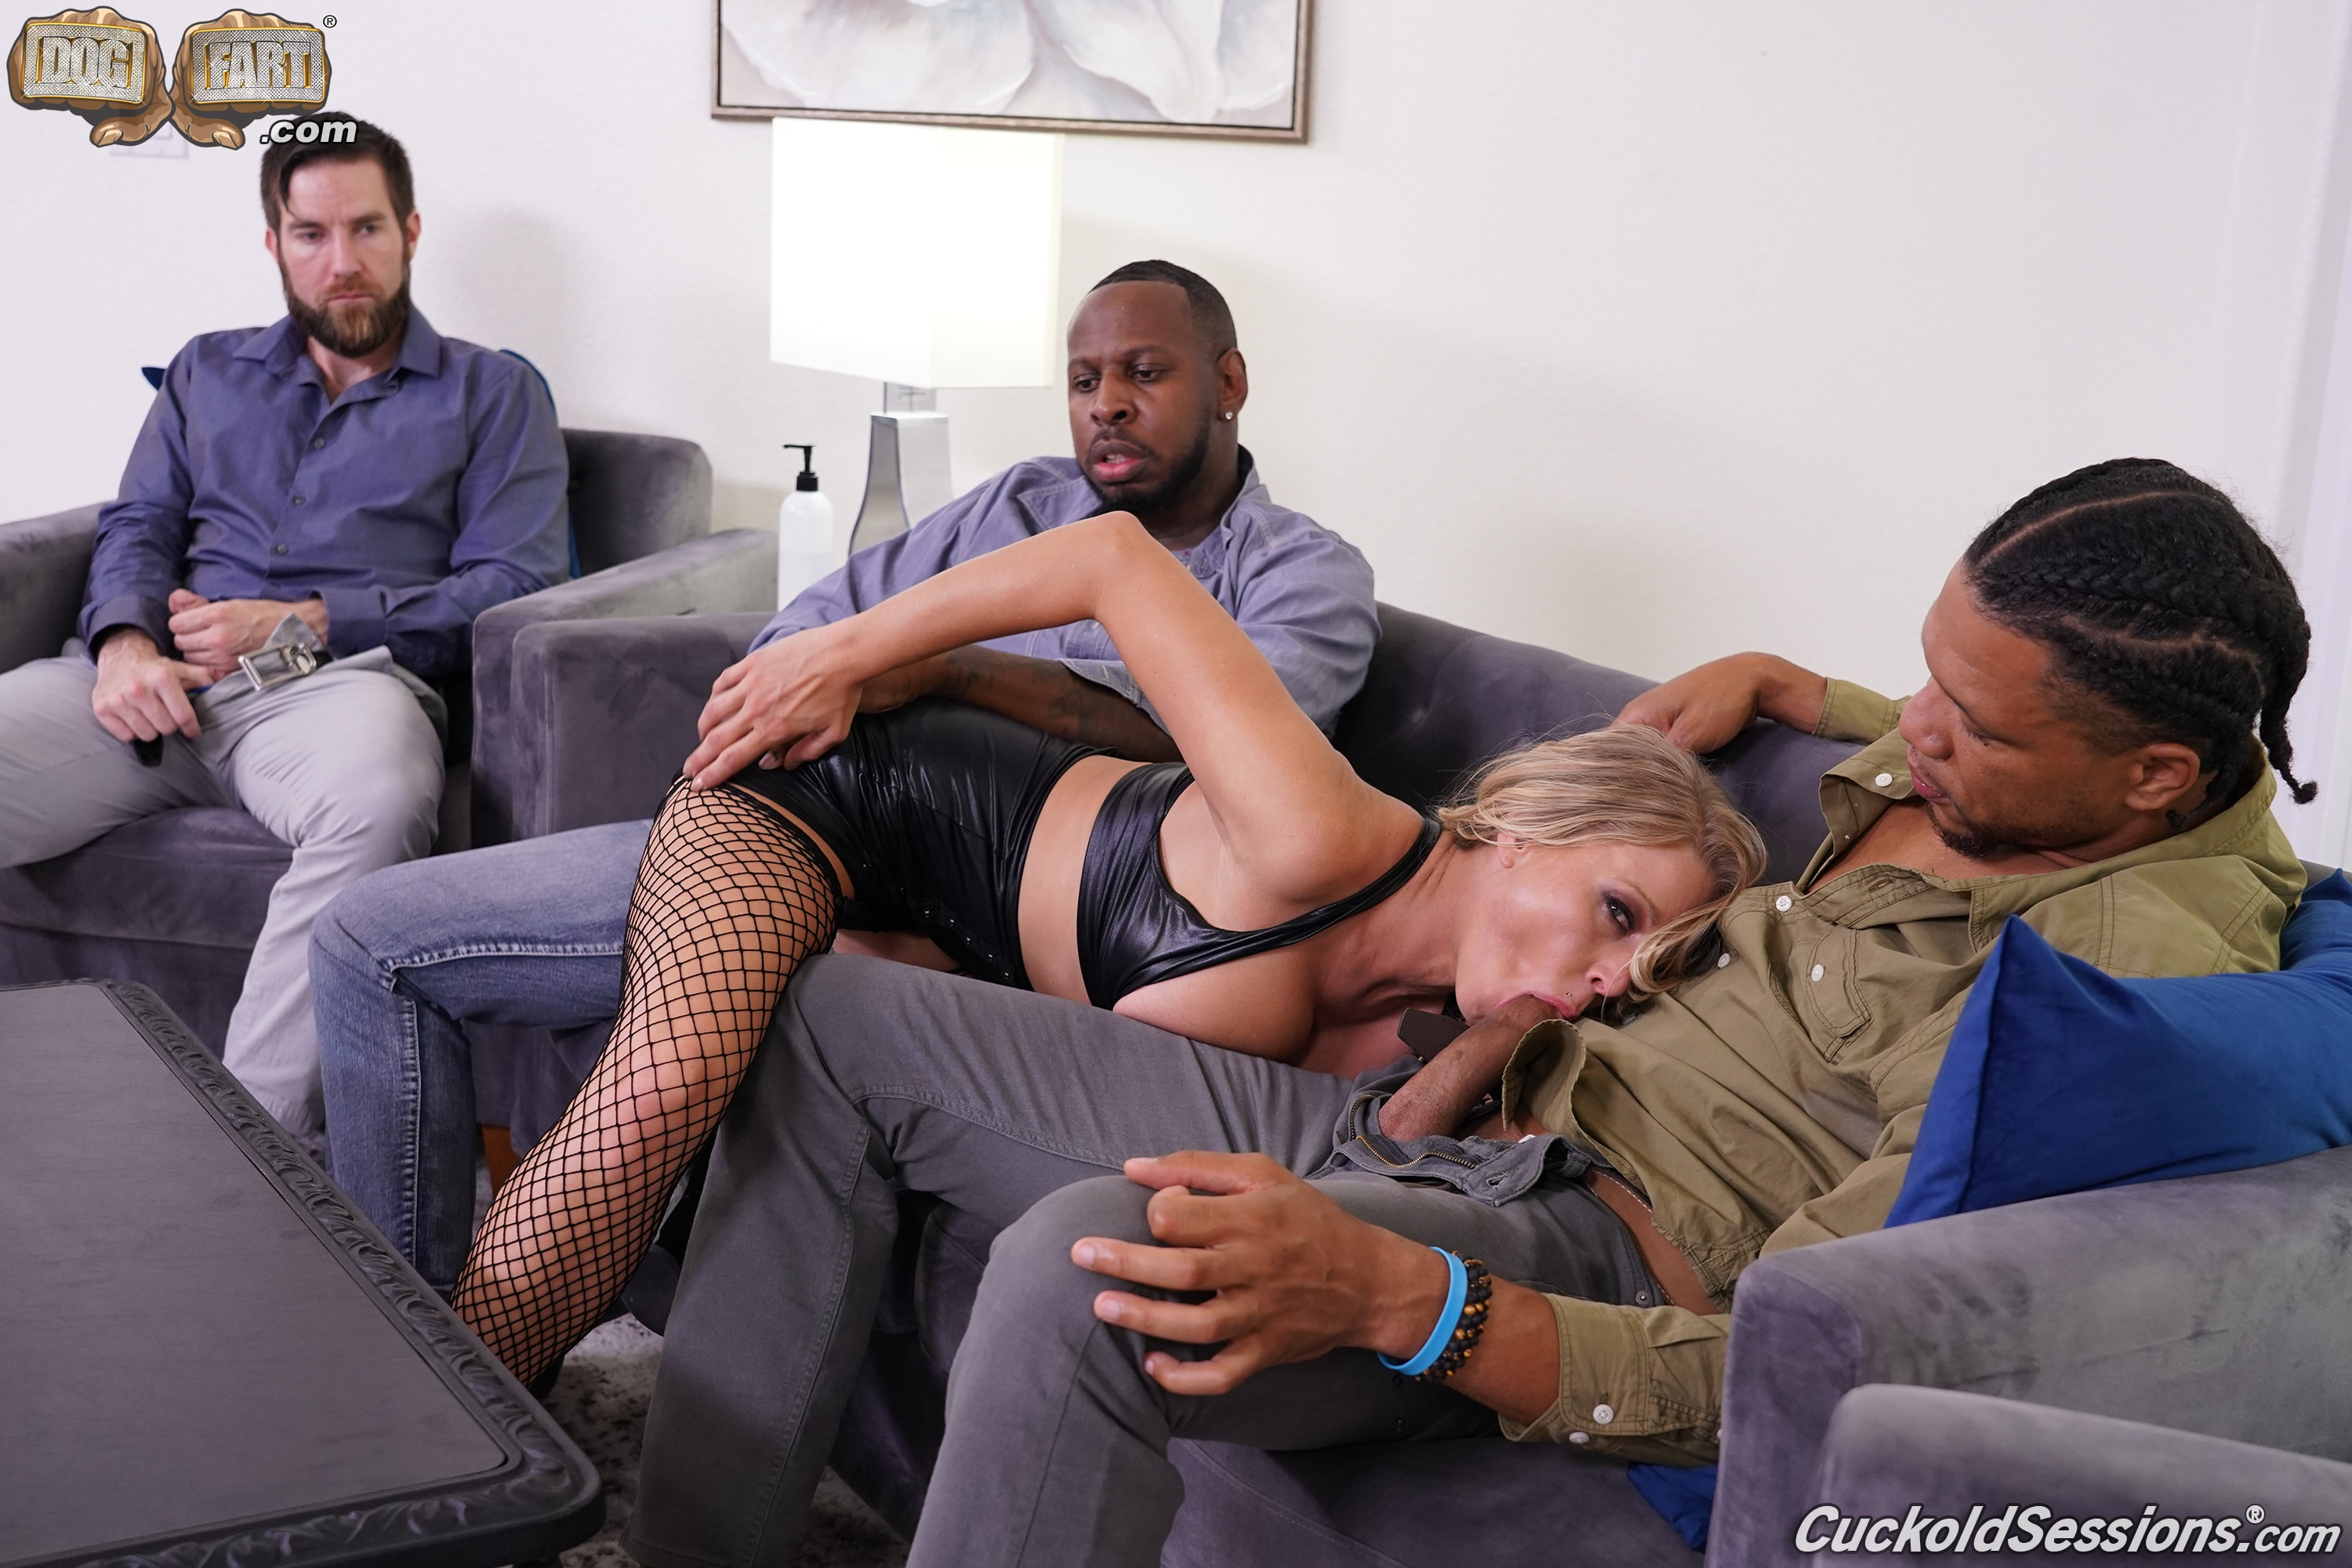 Dogfart '- Cuckold Sessions - Scene 2' starring Katie Morgan (Photo 16)